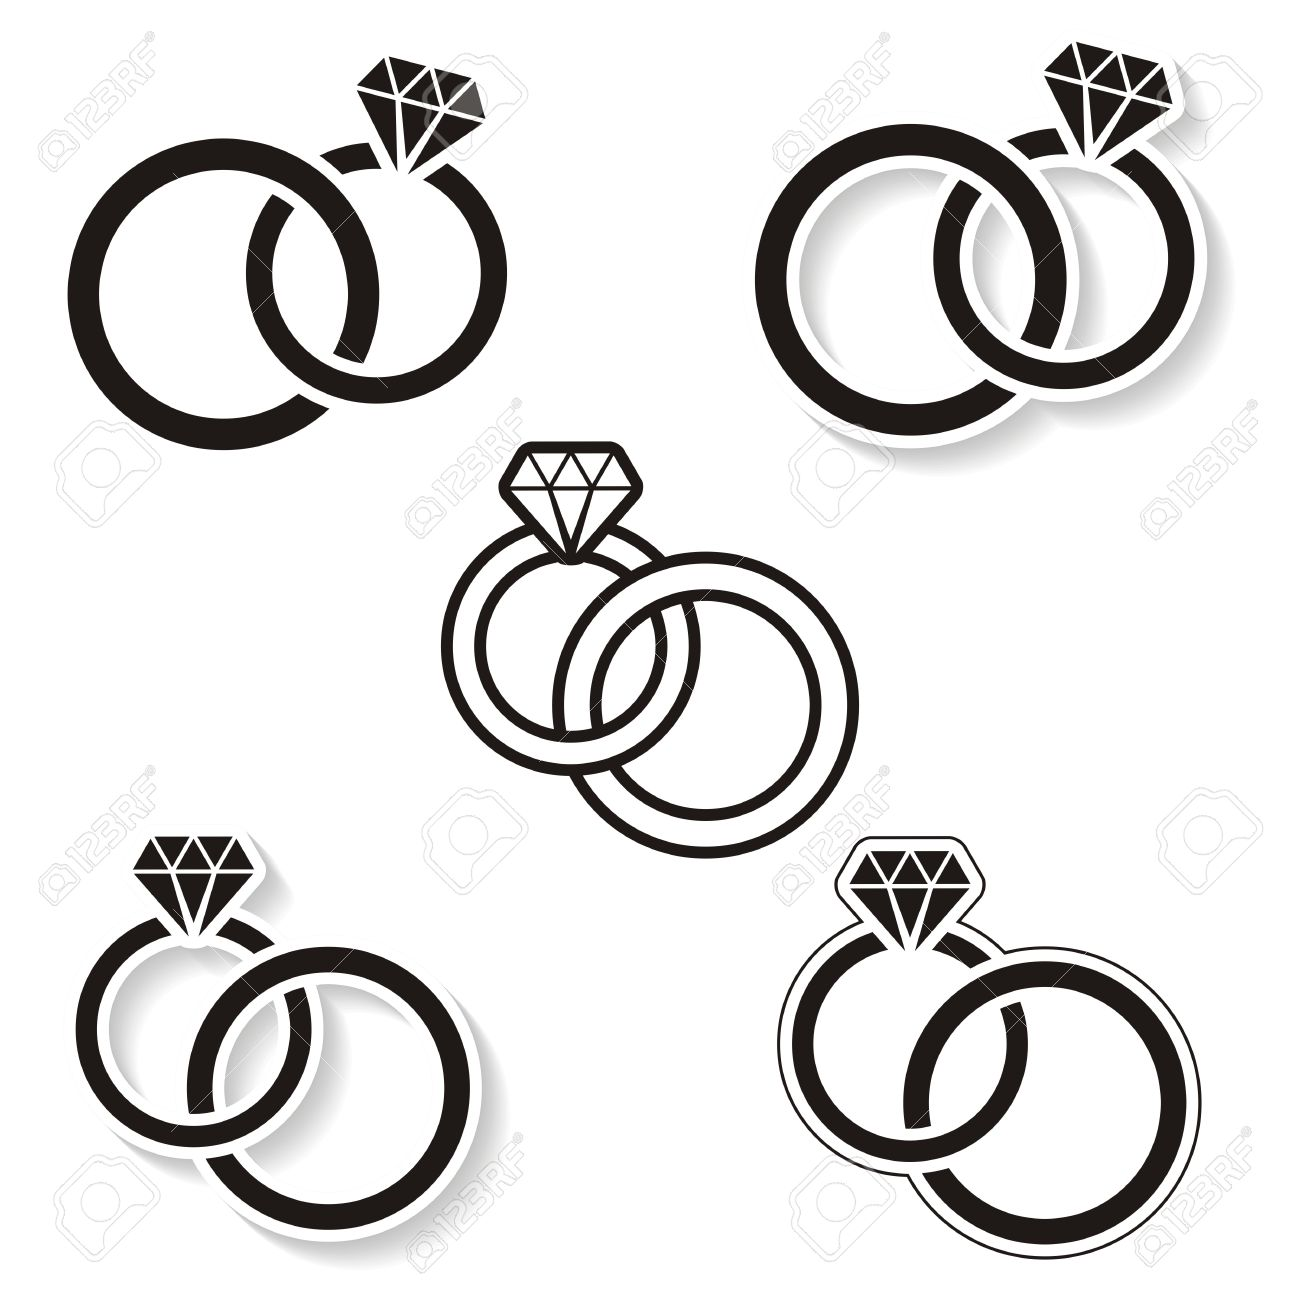 Black Wedding Rings Icon On White Background Royalty Free Cliparts